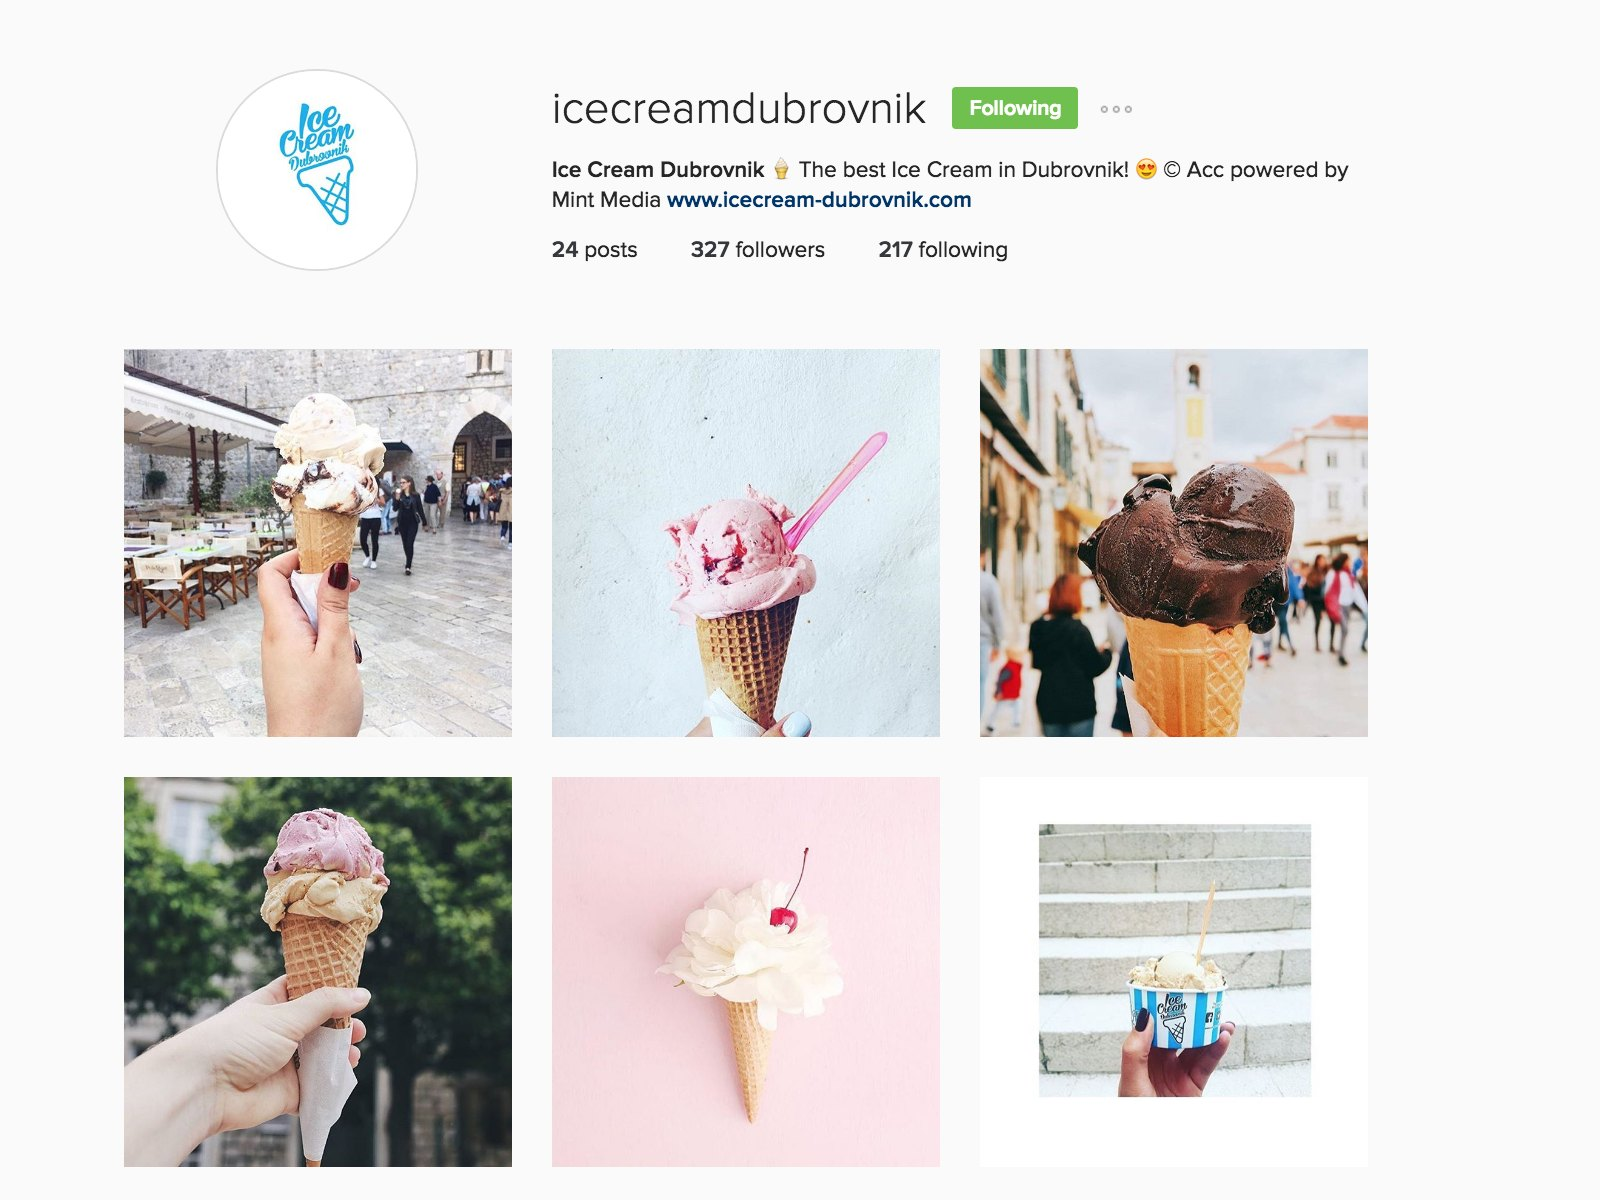 icecream dubrovnik instagram